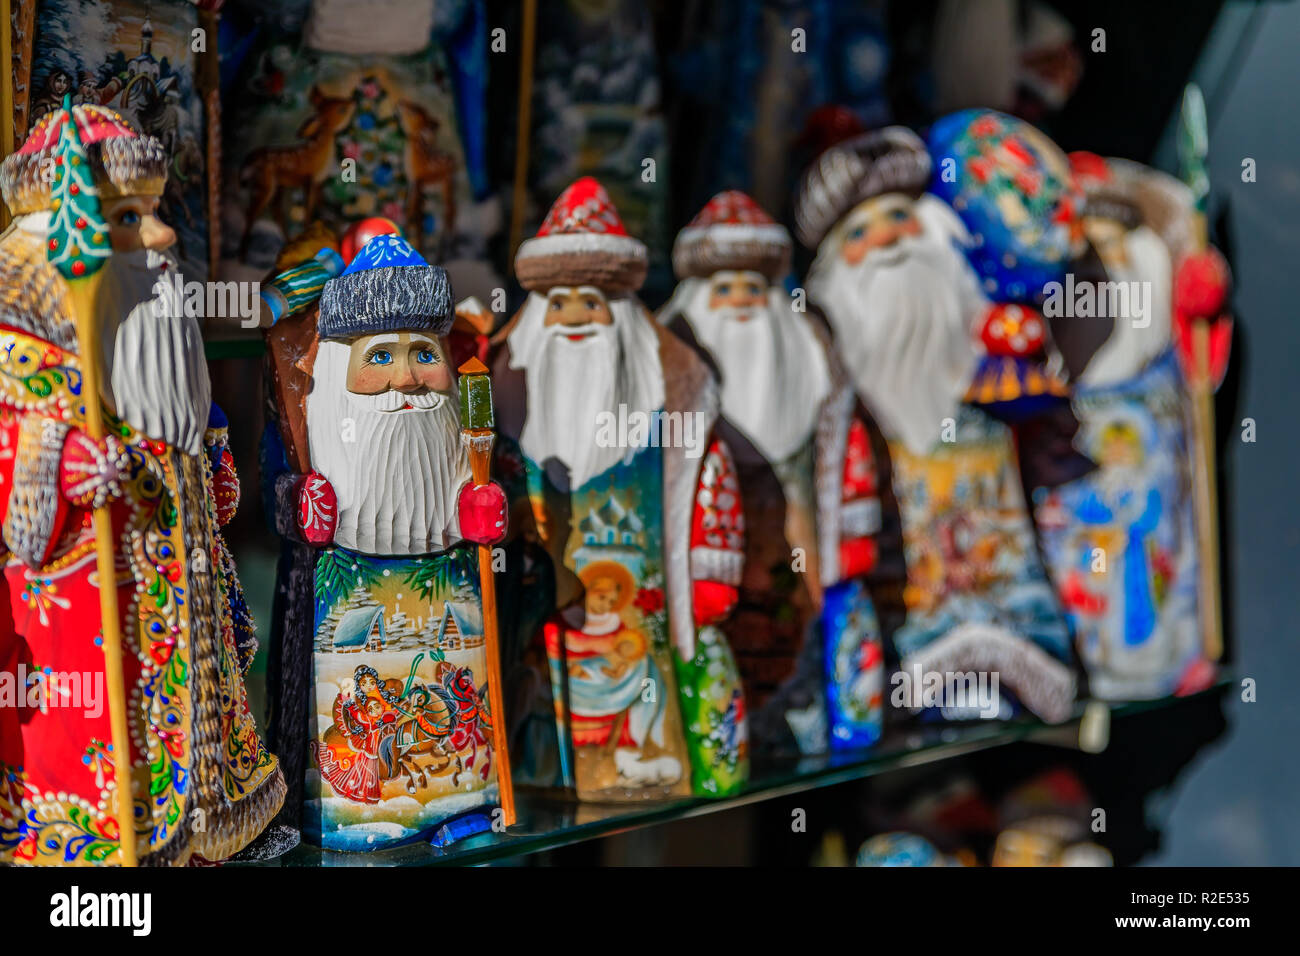 Colorful Christmas ornaments of Russian Santa Claus or Ded Moroz  (Grandfather Frost) on display 6b74d5981eb5